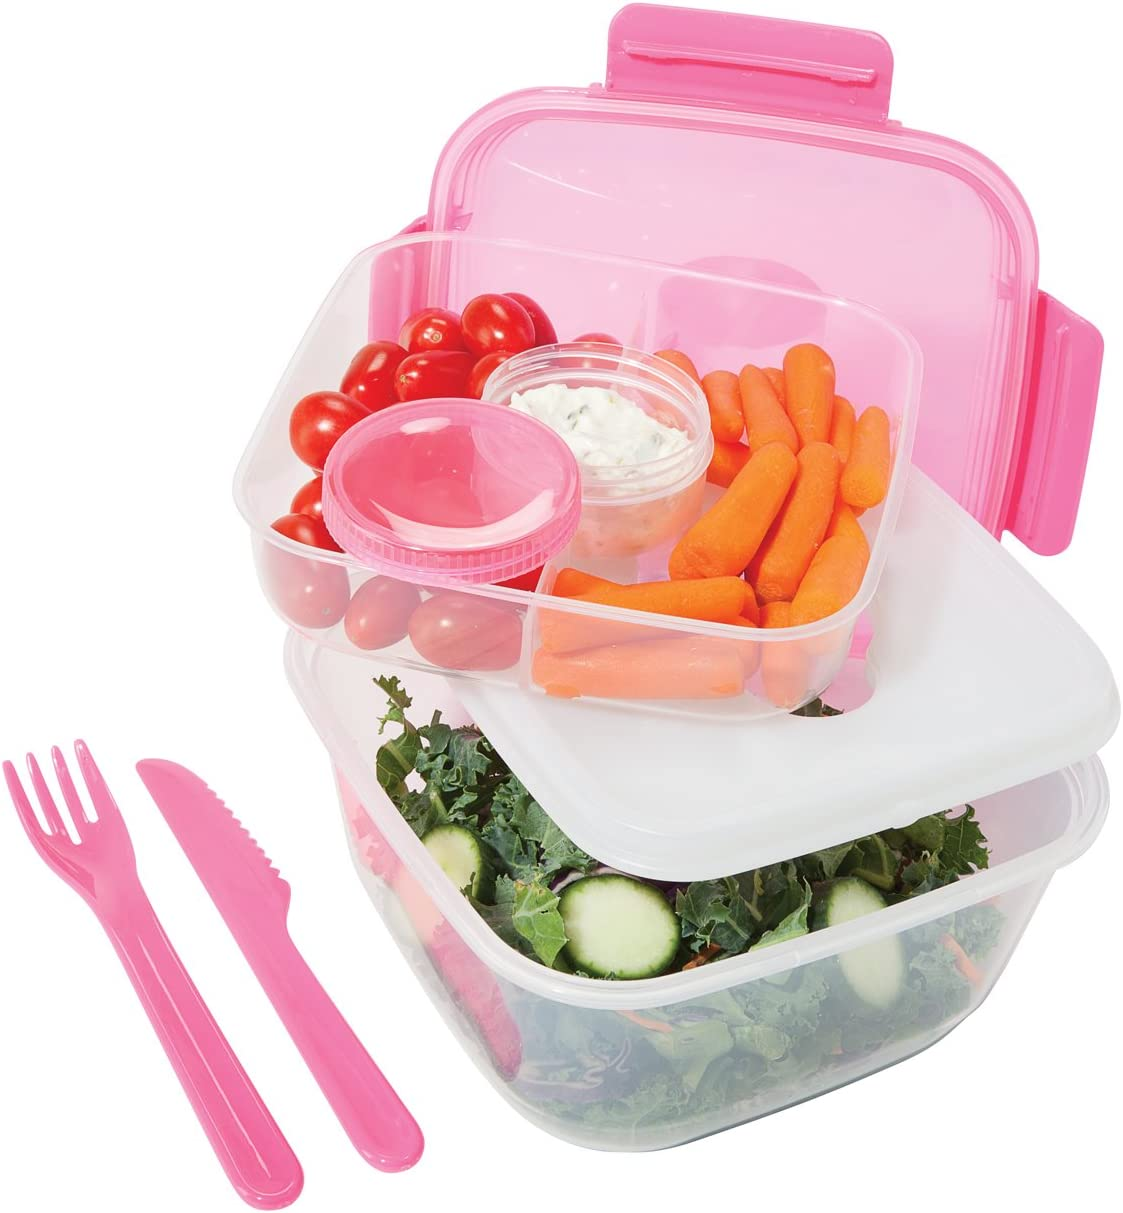 Oggi Chill To Go Food Container Lunchbox Set- Includes Knife, Fork, Tray, Dressing Container, Bottom Container, and Removable Freezer Pack-Pink